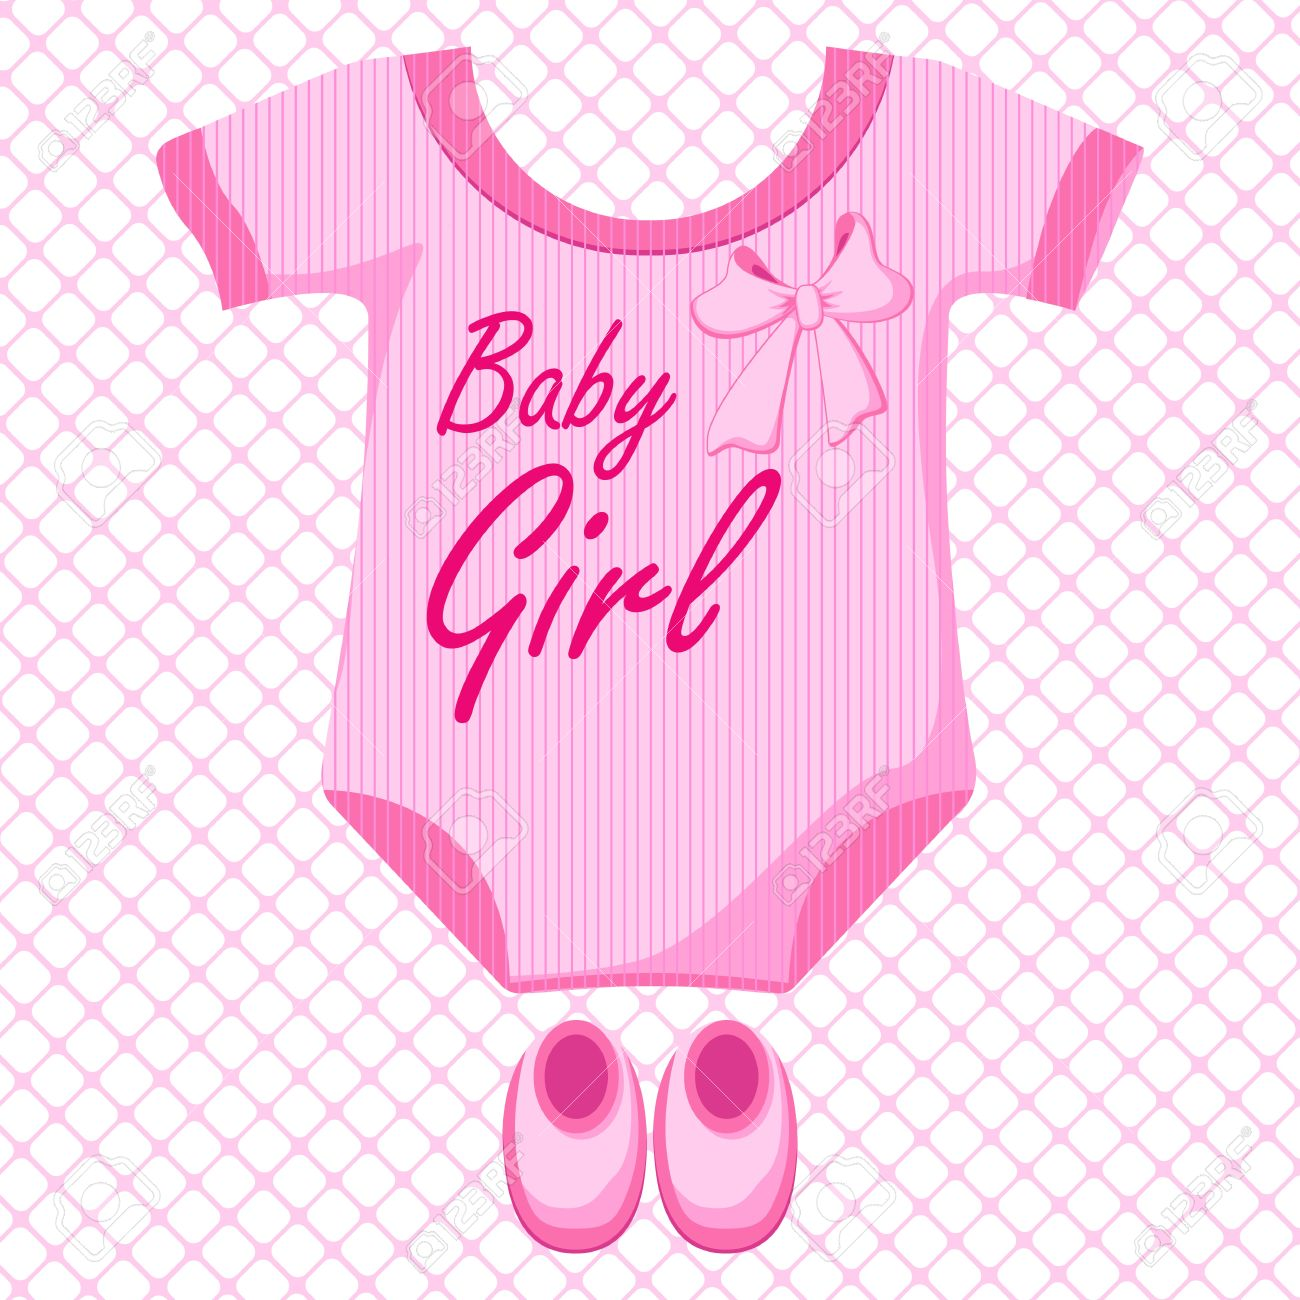 Baby Clothes For Girls Clipart.